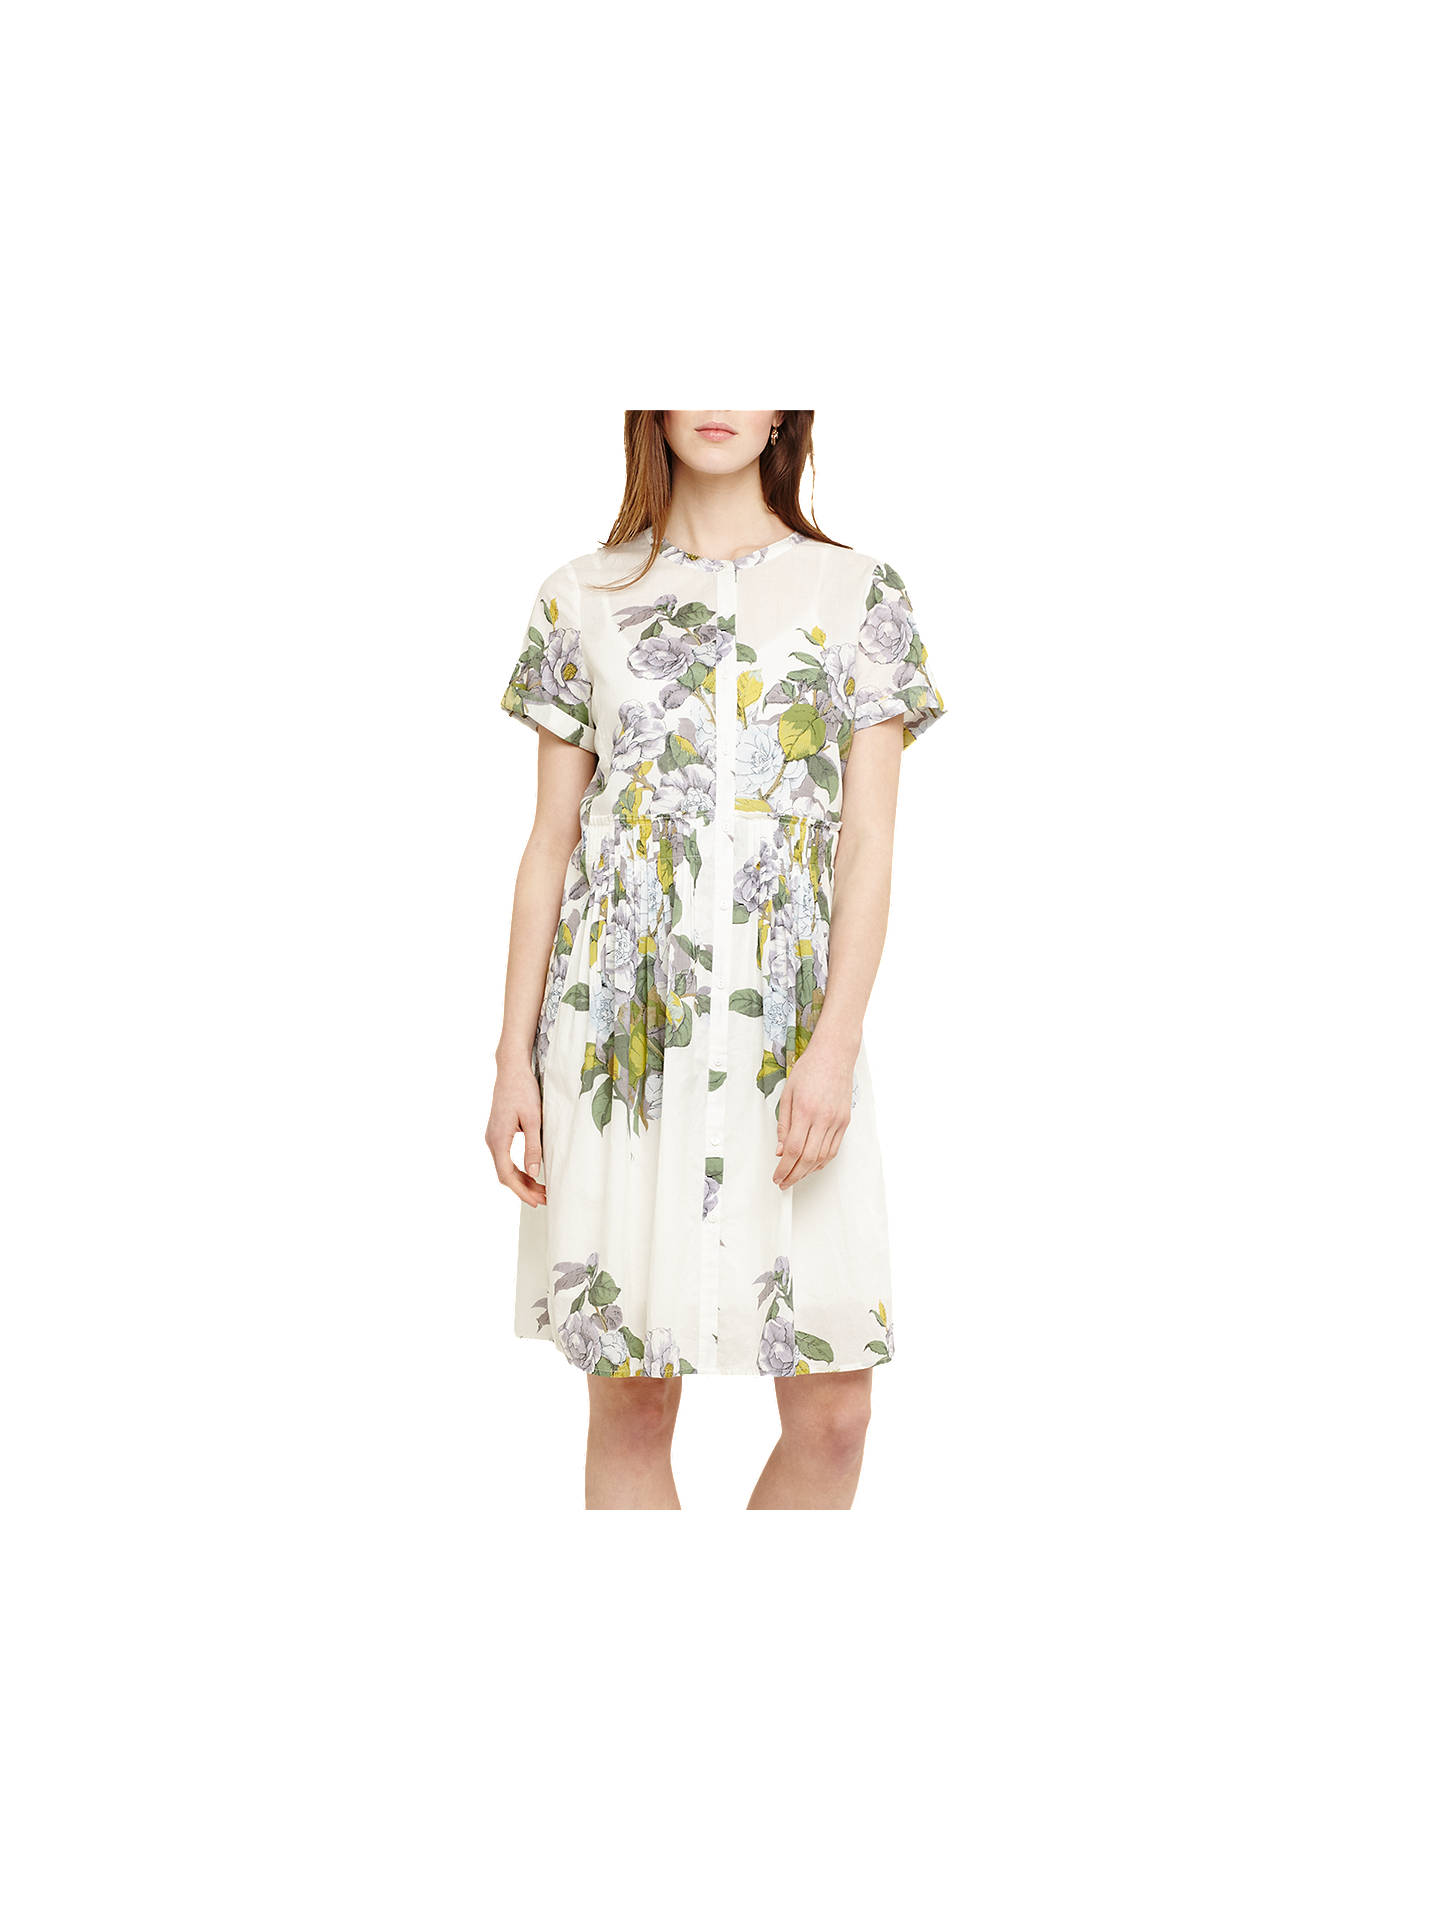 BuyPhase Eight Samara Floral Dress, Ivory/Multi, 10 Online at johnlewis.com